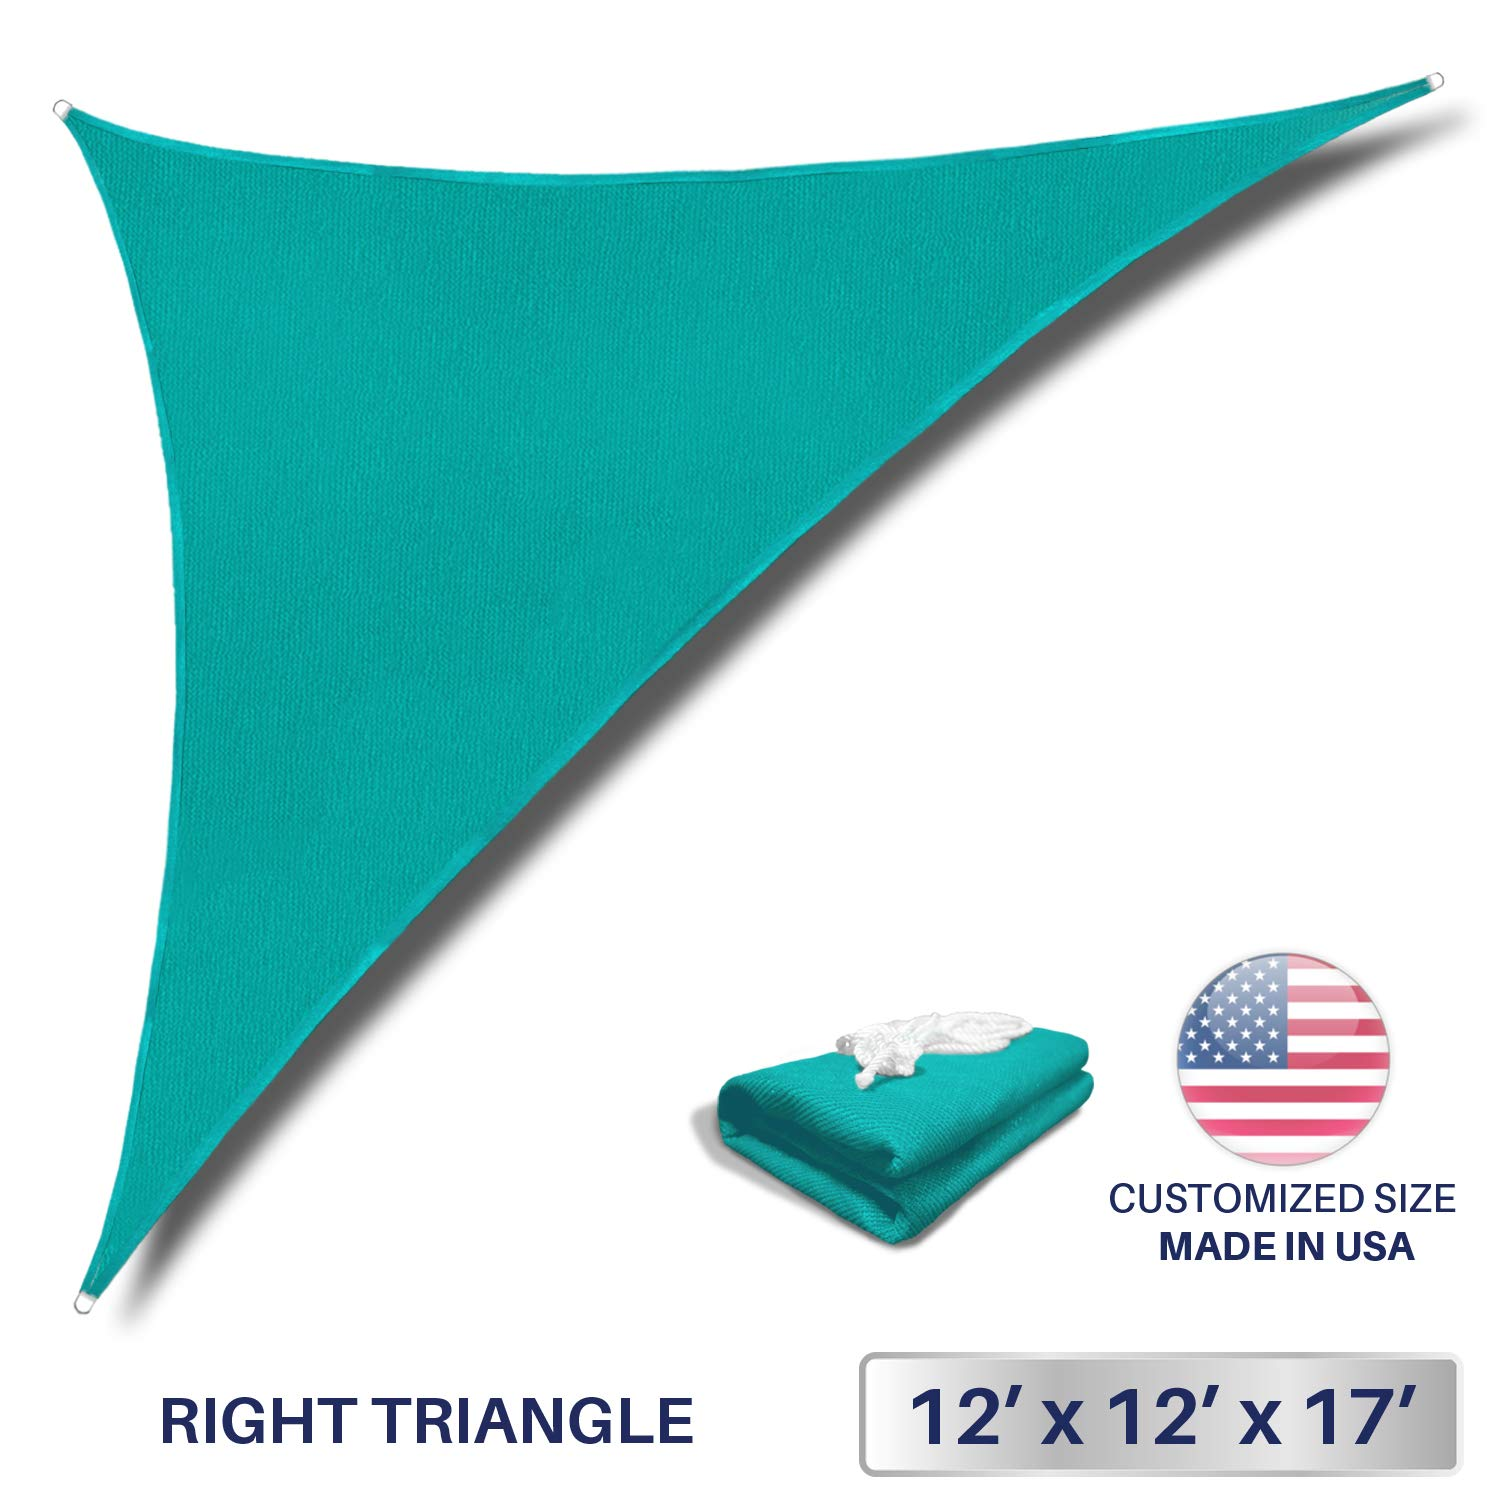 Windscreen4less 12' x 12' x 17' Sun Shade Sail Triangle Canopy in Turquoise with Commercial Grade (3 Year Warranty) Customized